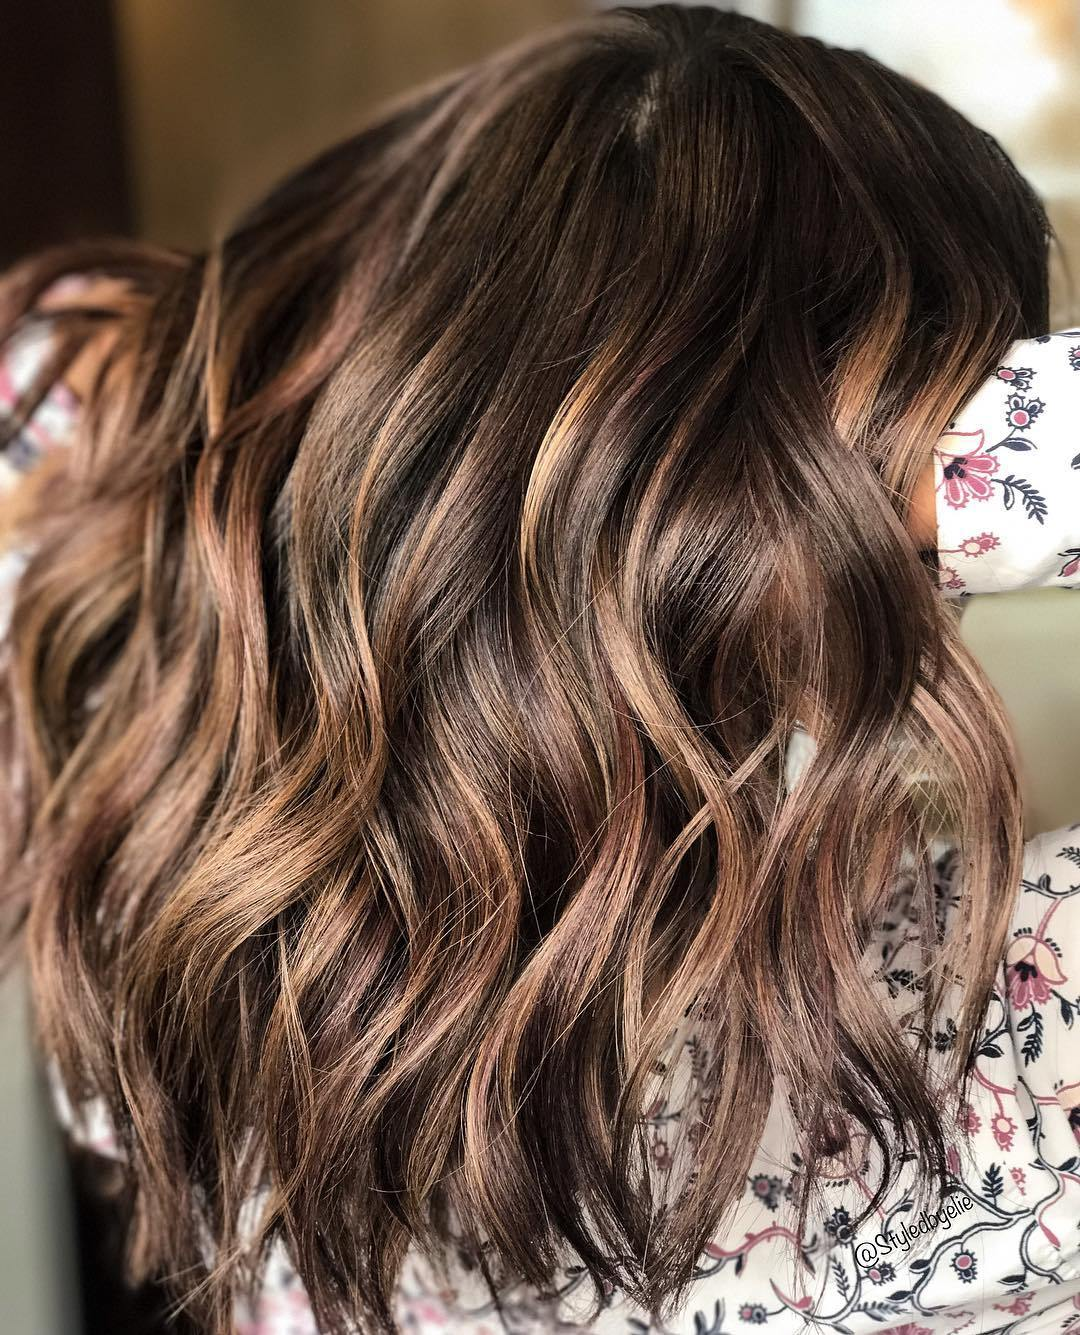 1-chocolate-brown-hair-with-highlights